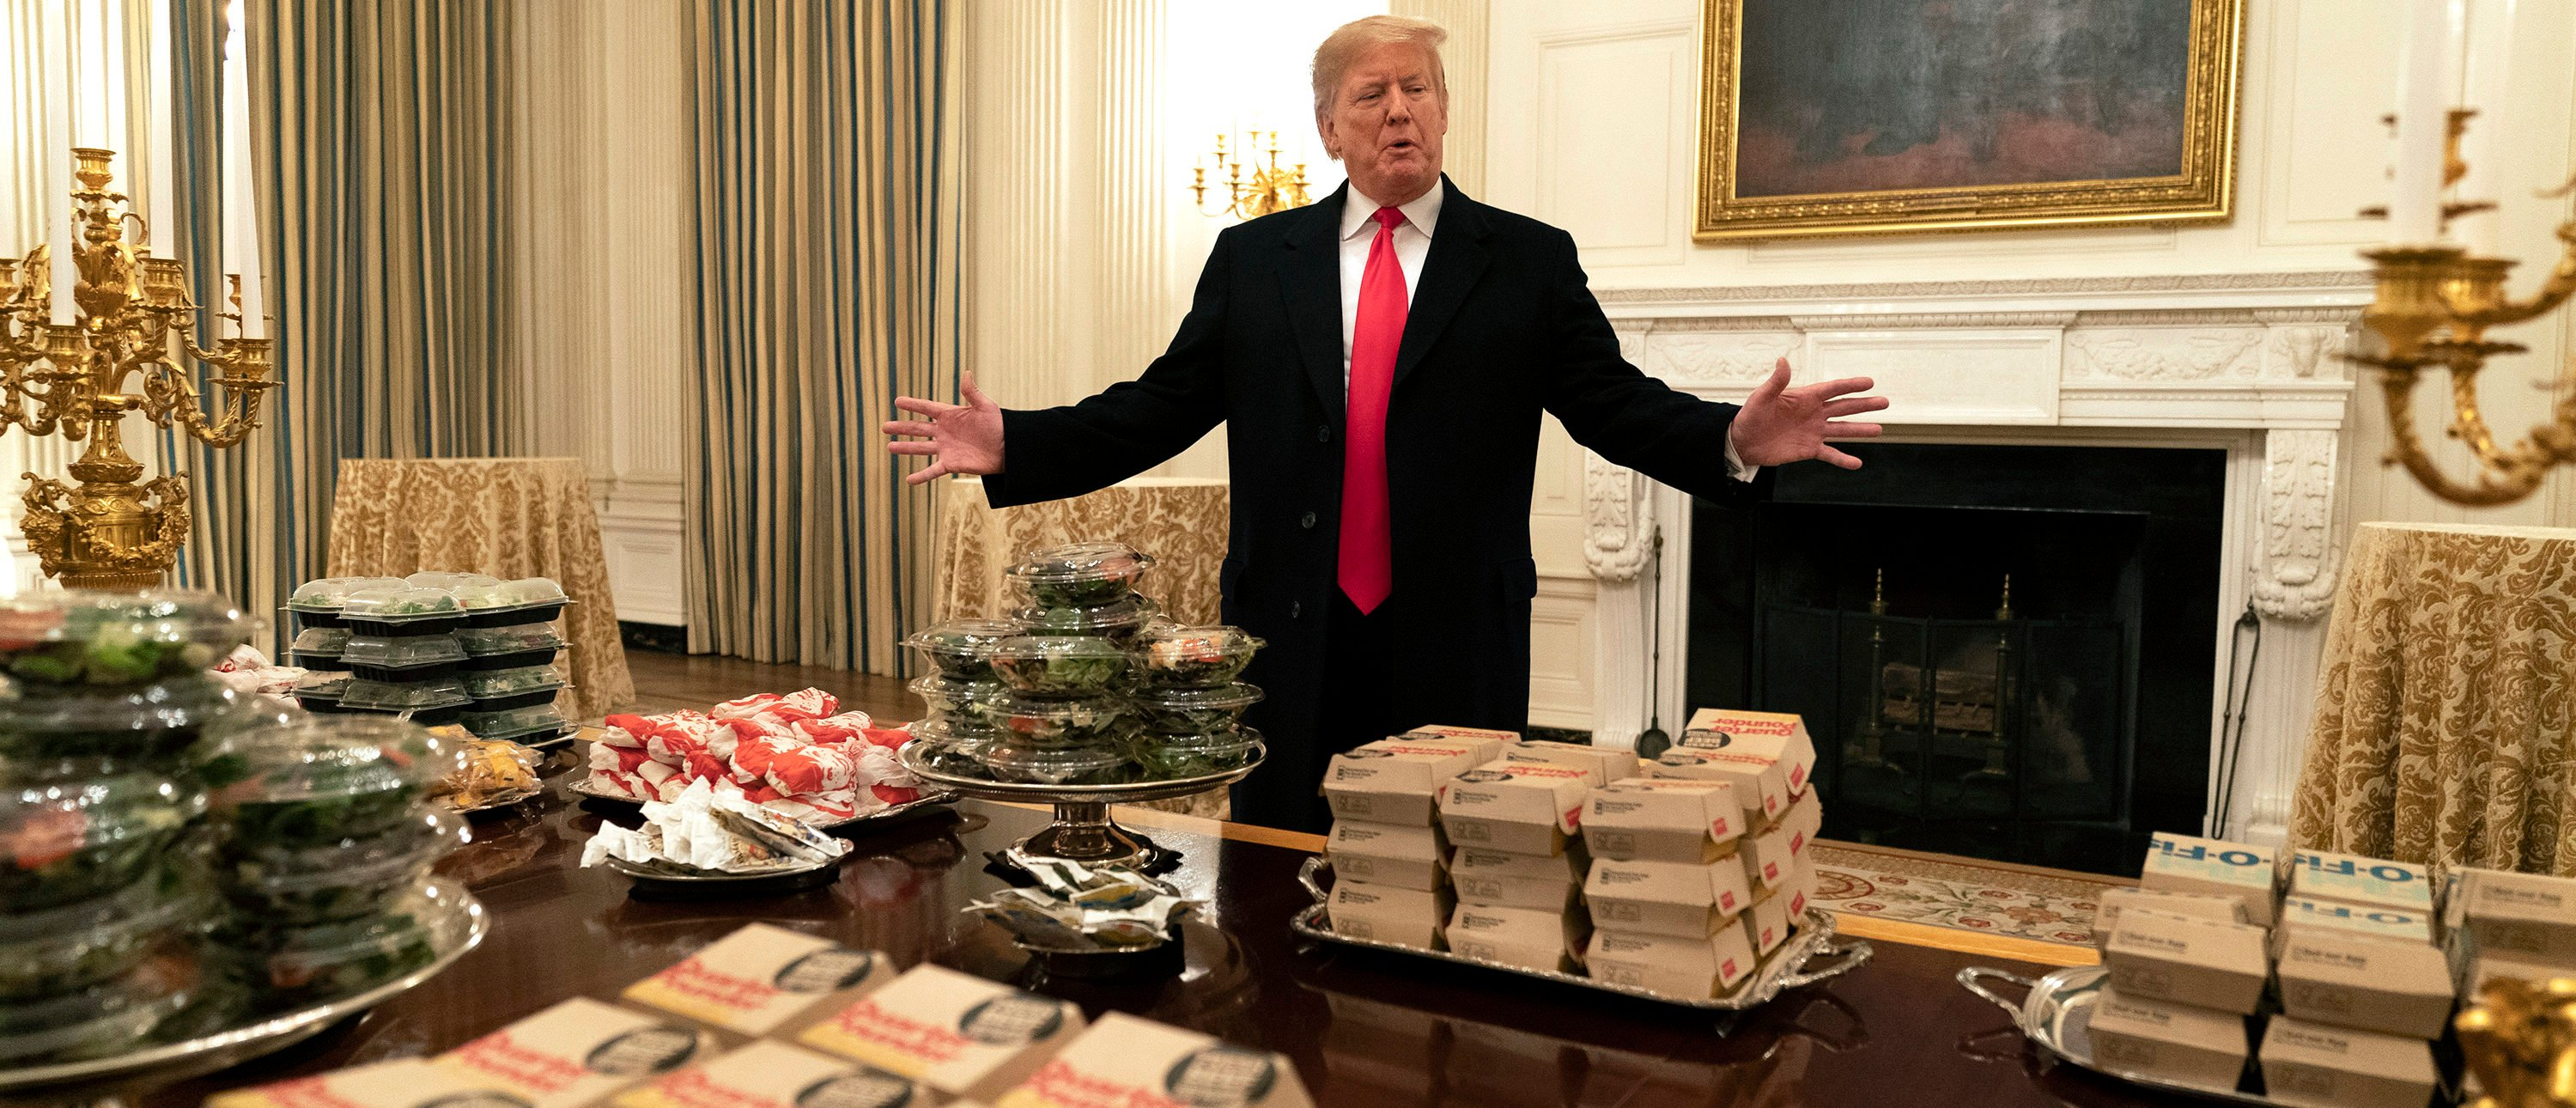 WASHINGTON, DC - JANUARY 14: (AFP OUT) U.S President Donald Trump presents fast food to be served to the Clemson Tigers football team to celebrate their Championship at the White House on January 14, 2019 in Washington, DC. (Photo by Chris Kleponis-Pool/Getty Images)